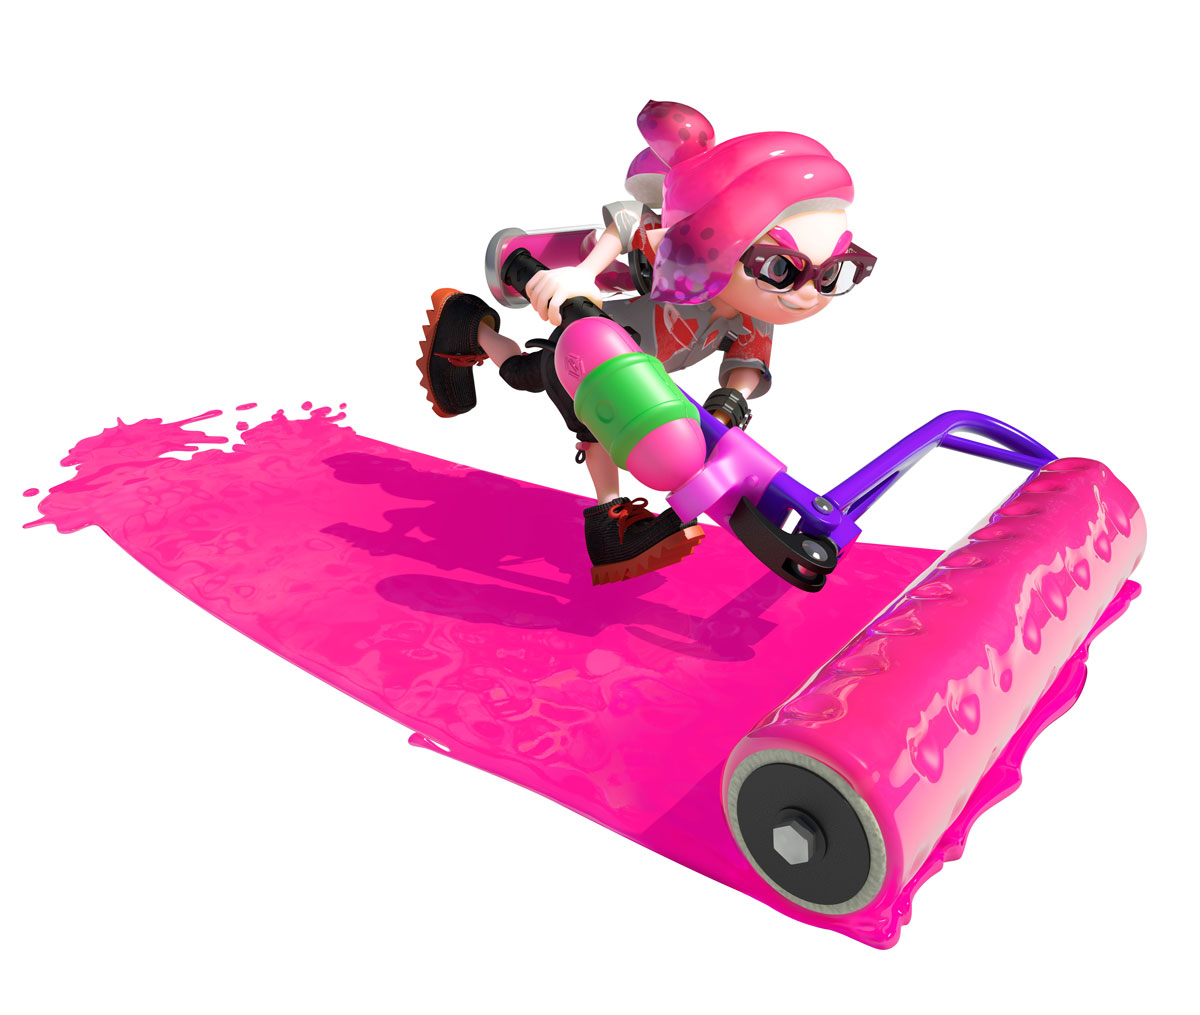 Splatoon 2 Inkling with a paint roller. From Nintendo